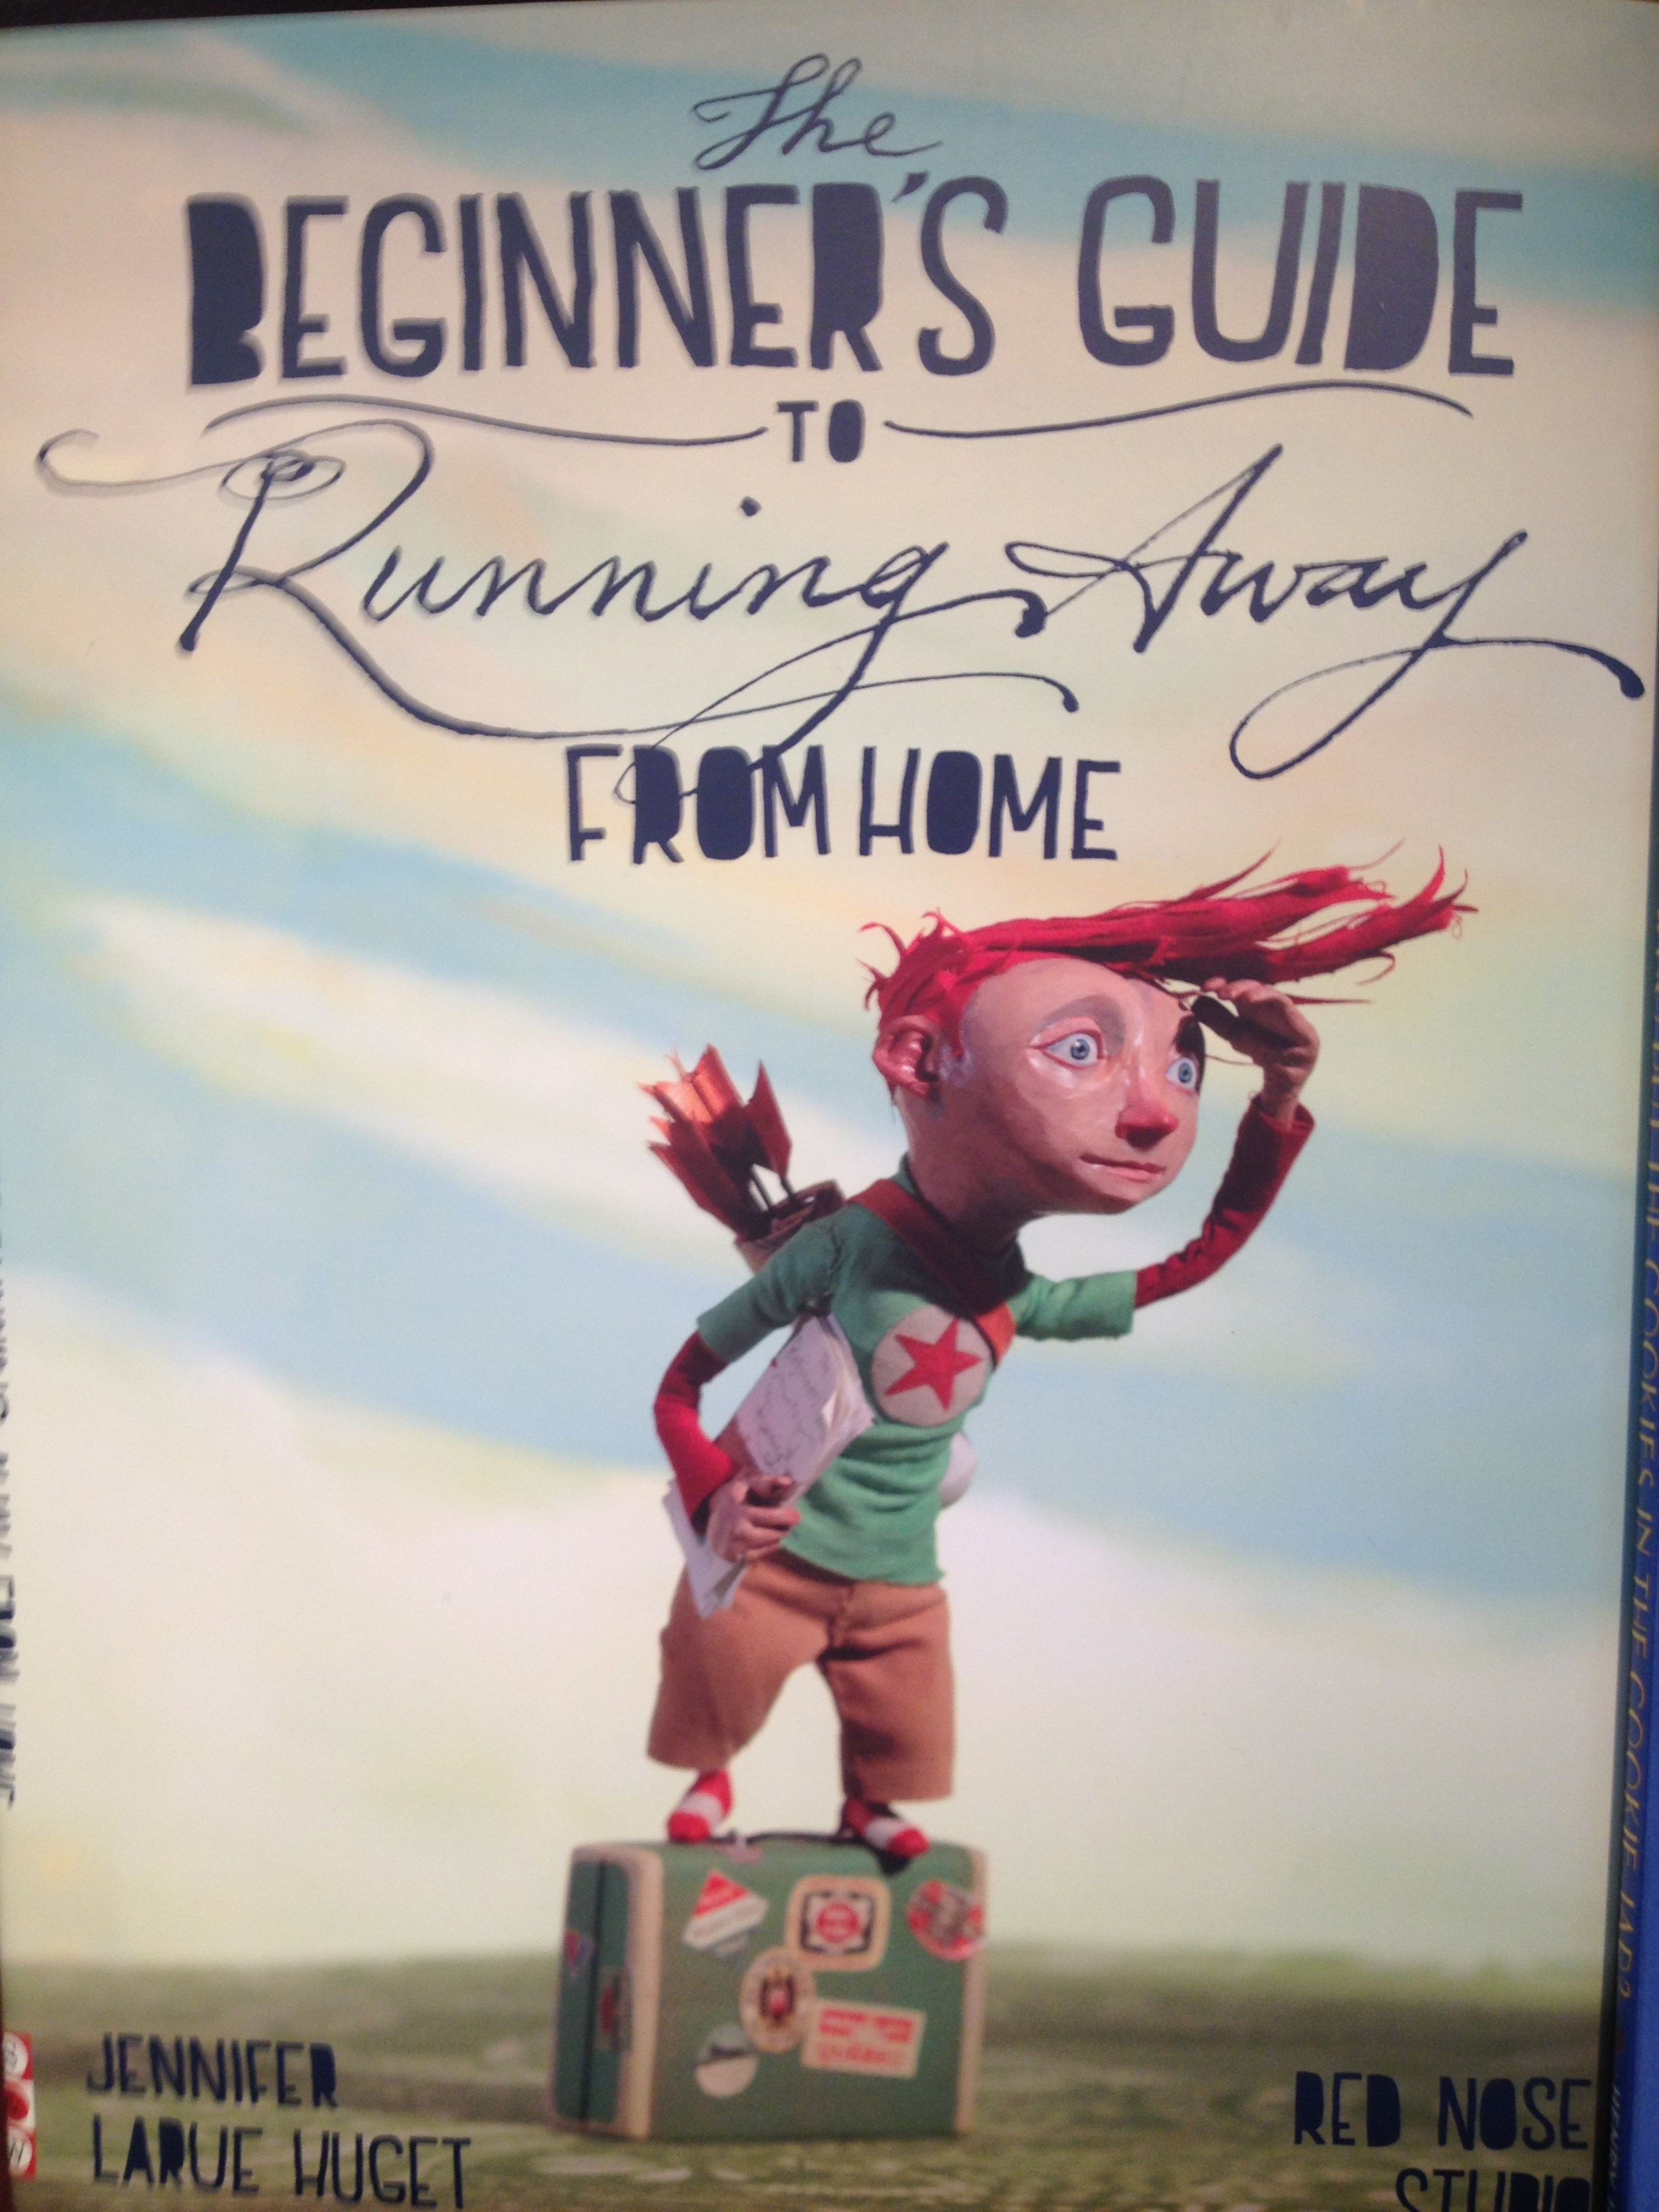 Great mentor text option for teaching how to write